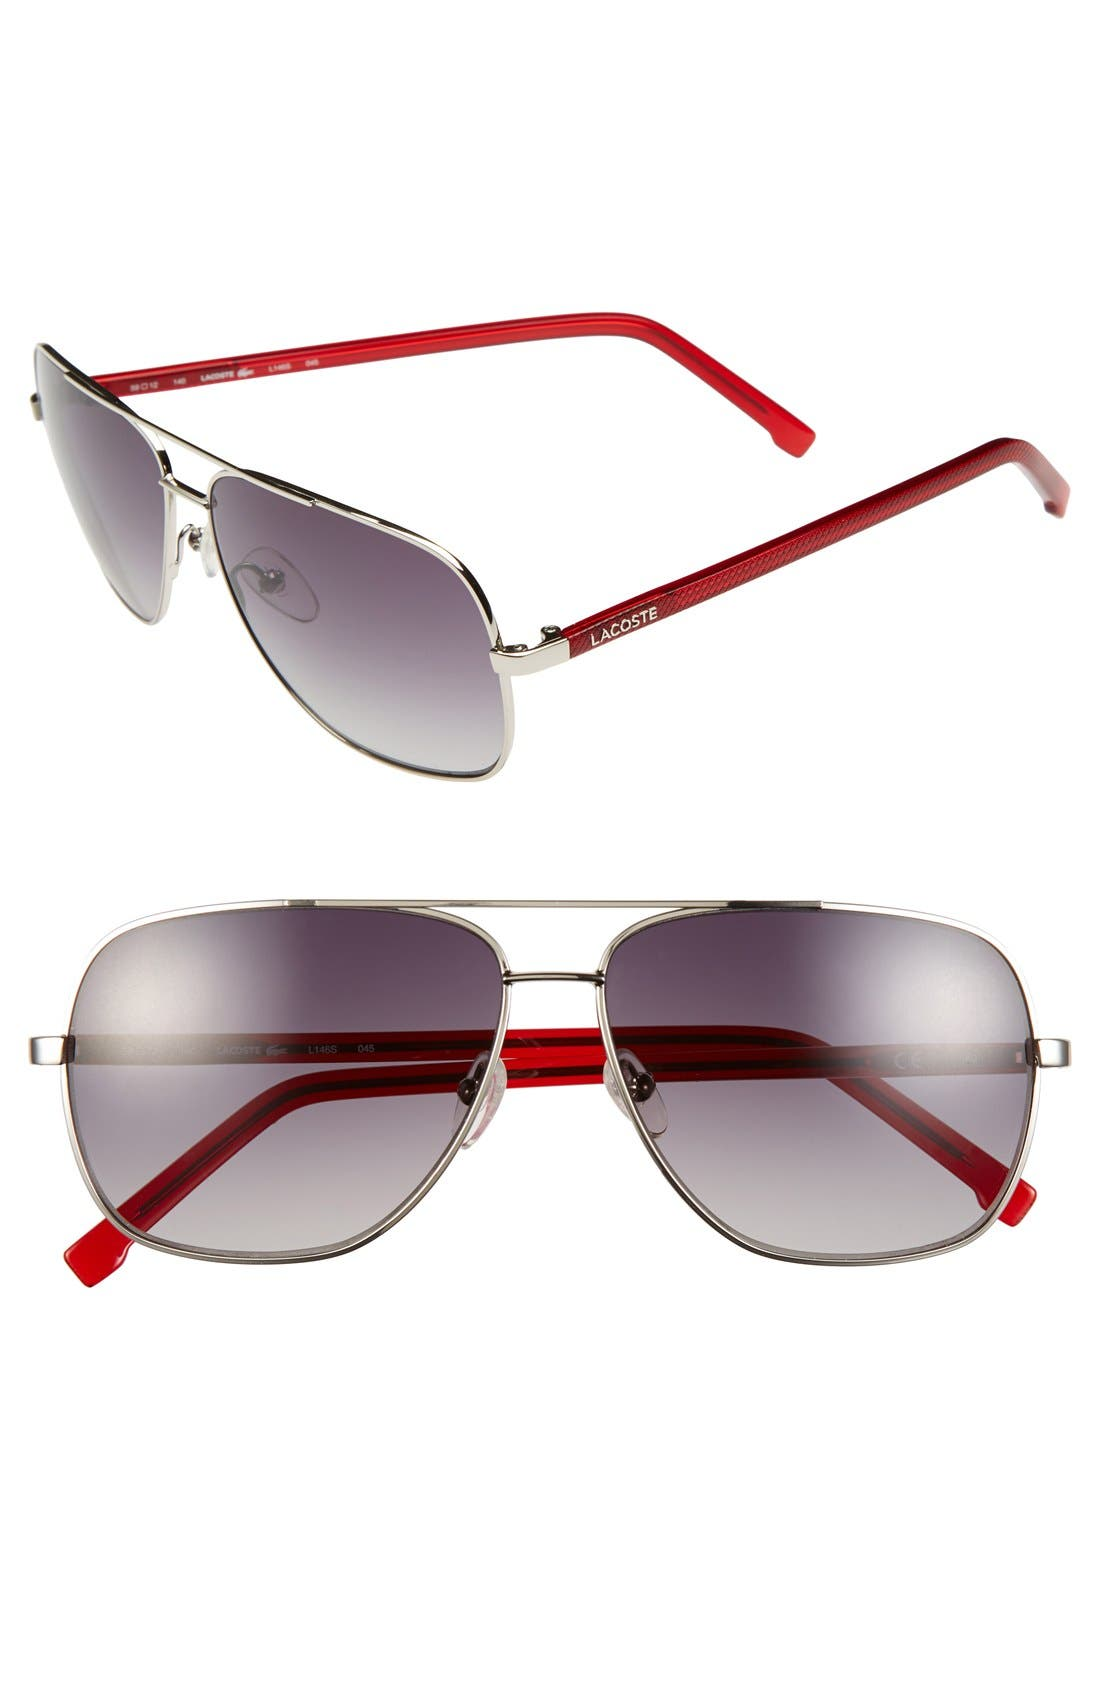 Main Image - Lacoste 59mm Aviator Sunglasses